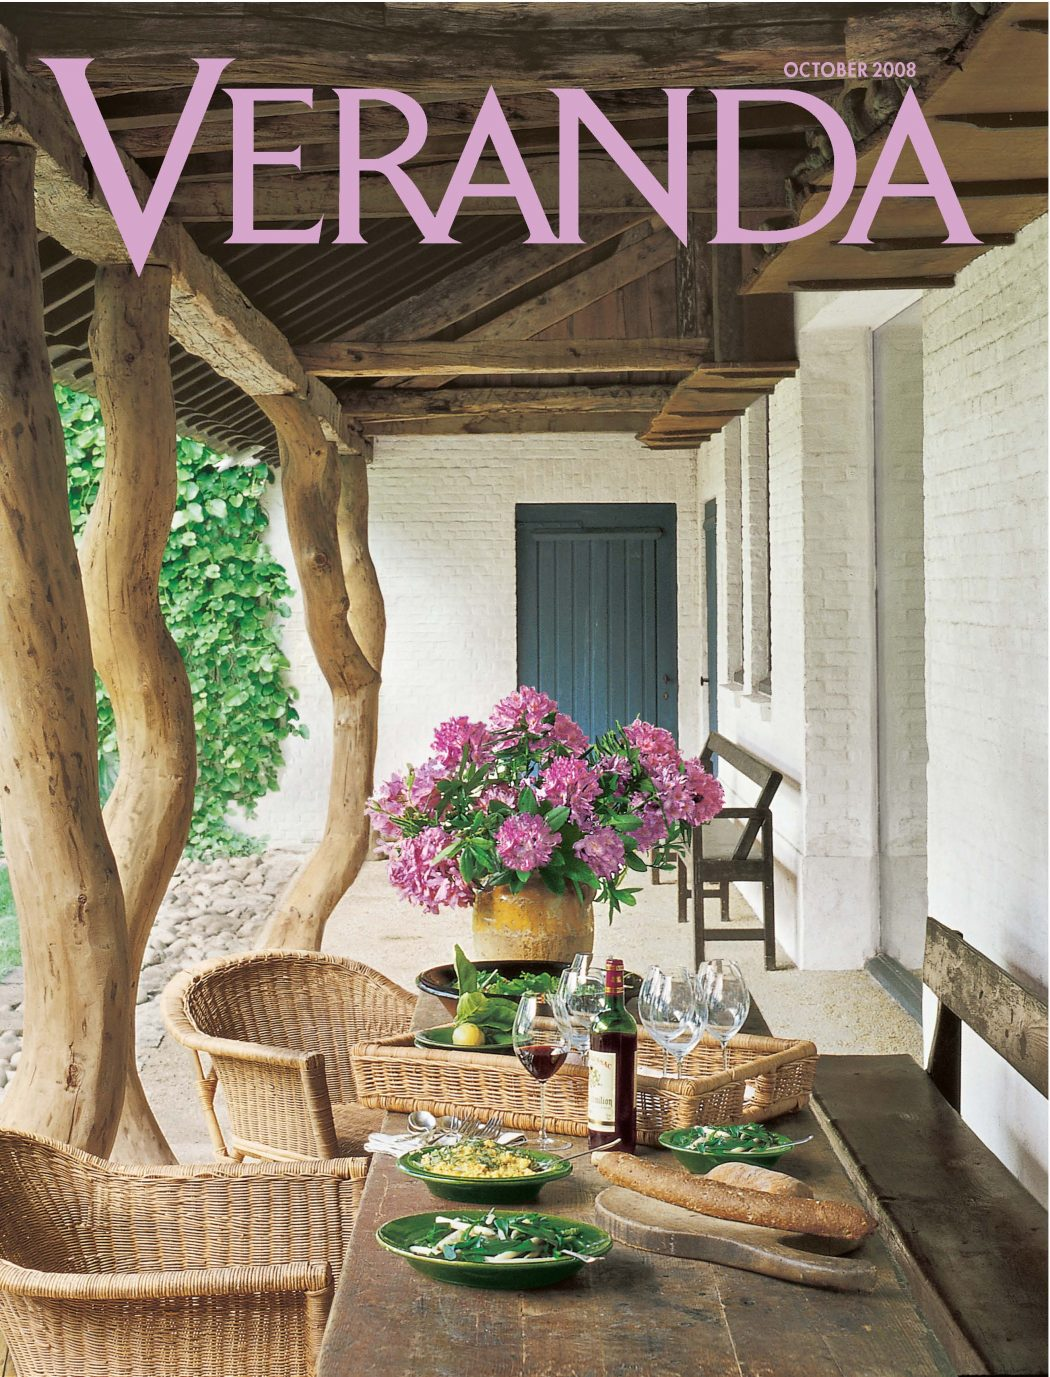 veranda1 7 Most Popular US Magazines of Home Decor